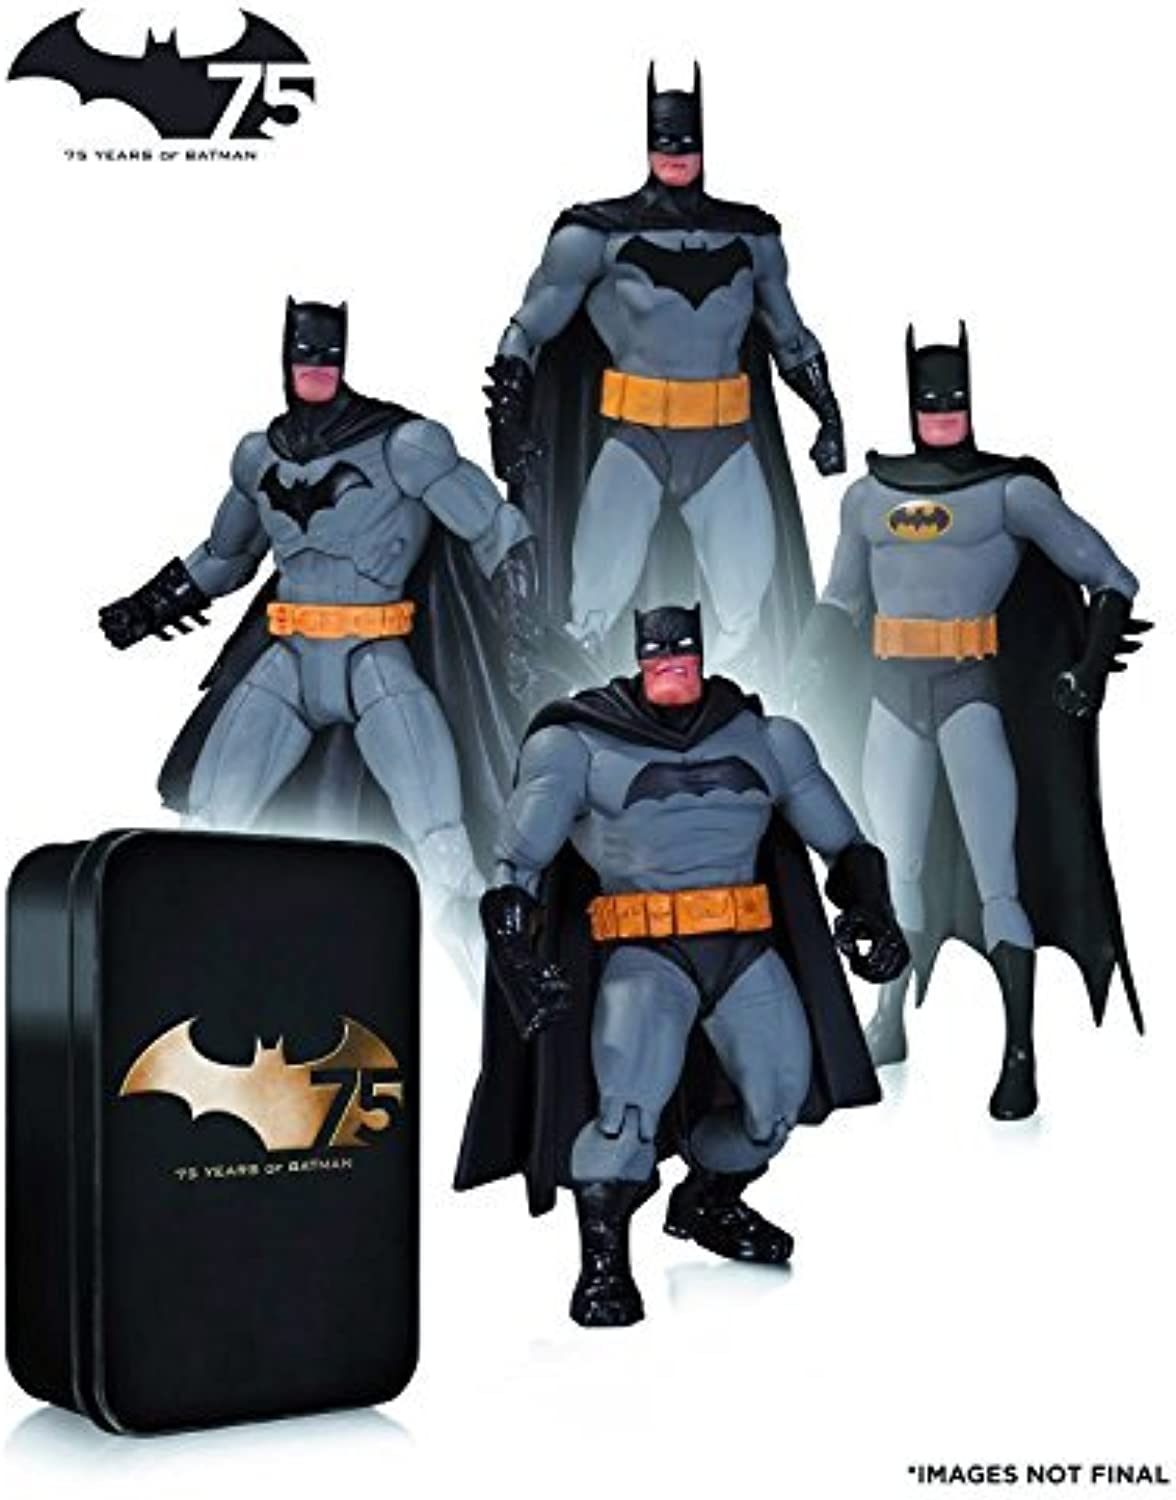 Batman   75th Anniversary Action Figure 4PK set 2 by DC Collectible